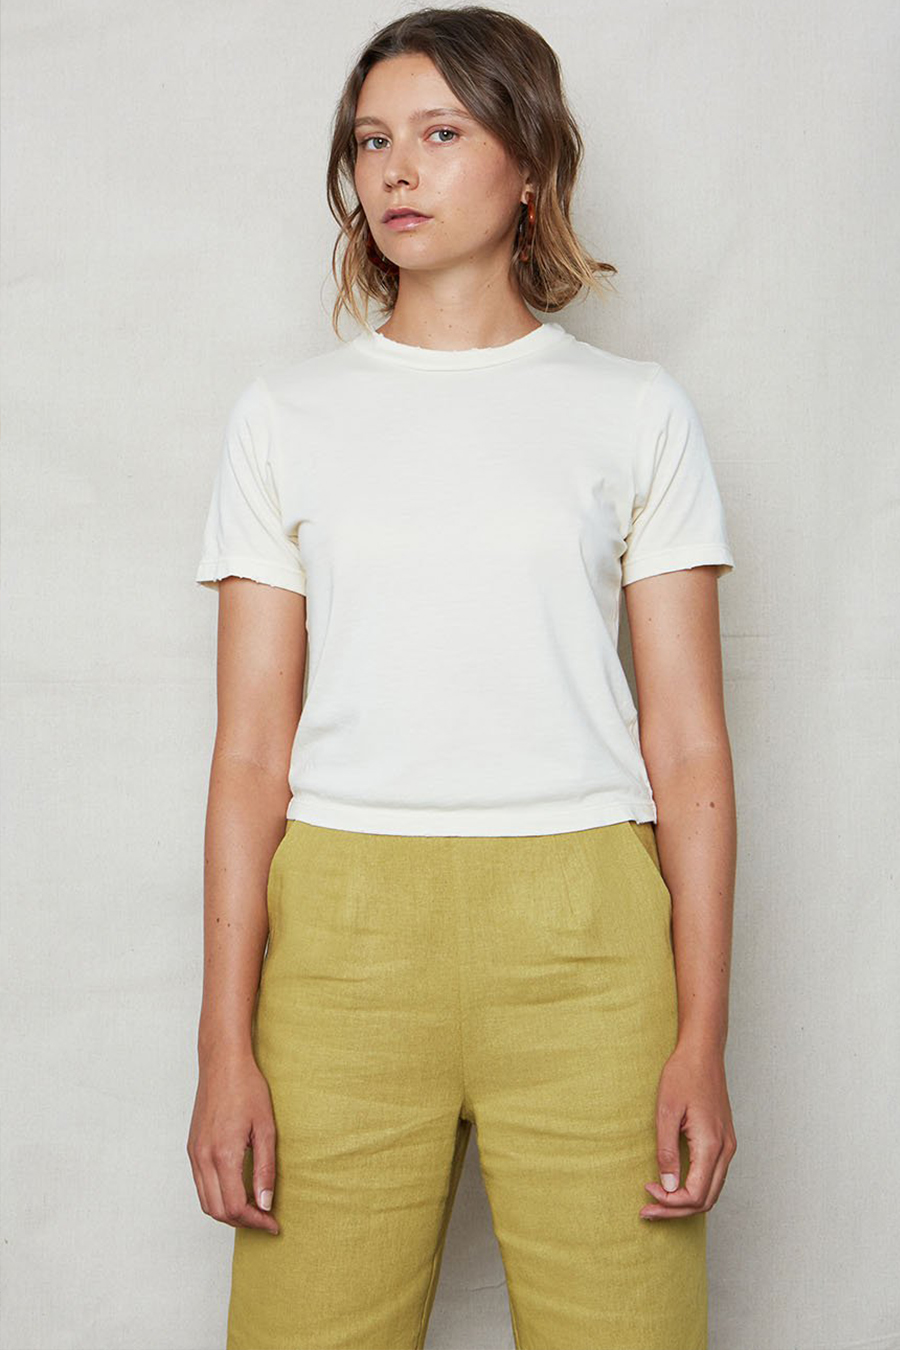 09777b9317f3 42 Eco-Friendly & Fairtrade White T-Shirts For Every Budget